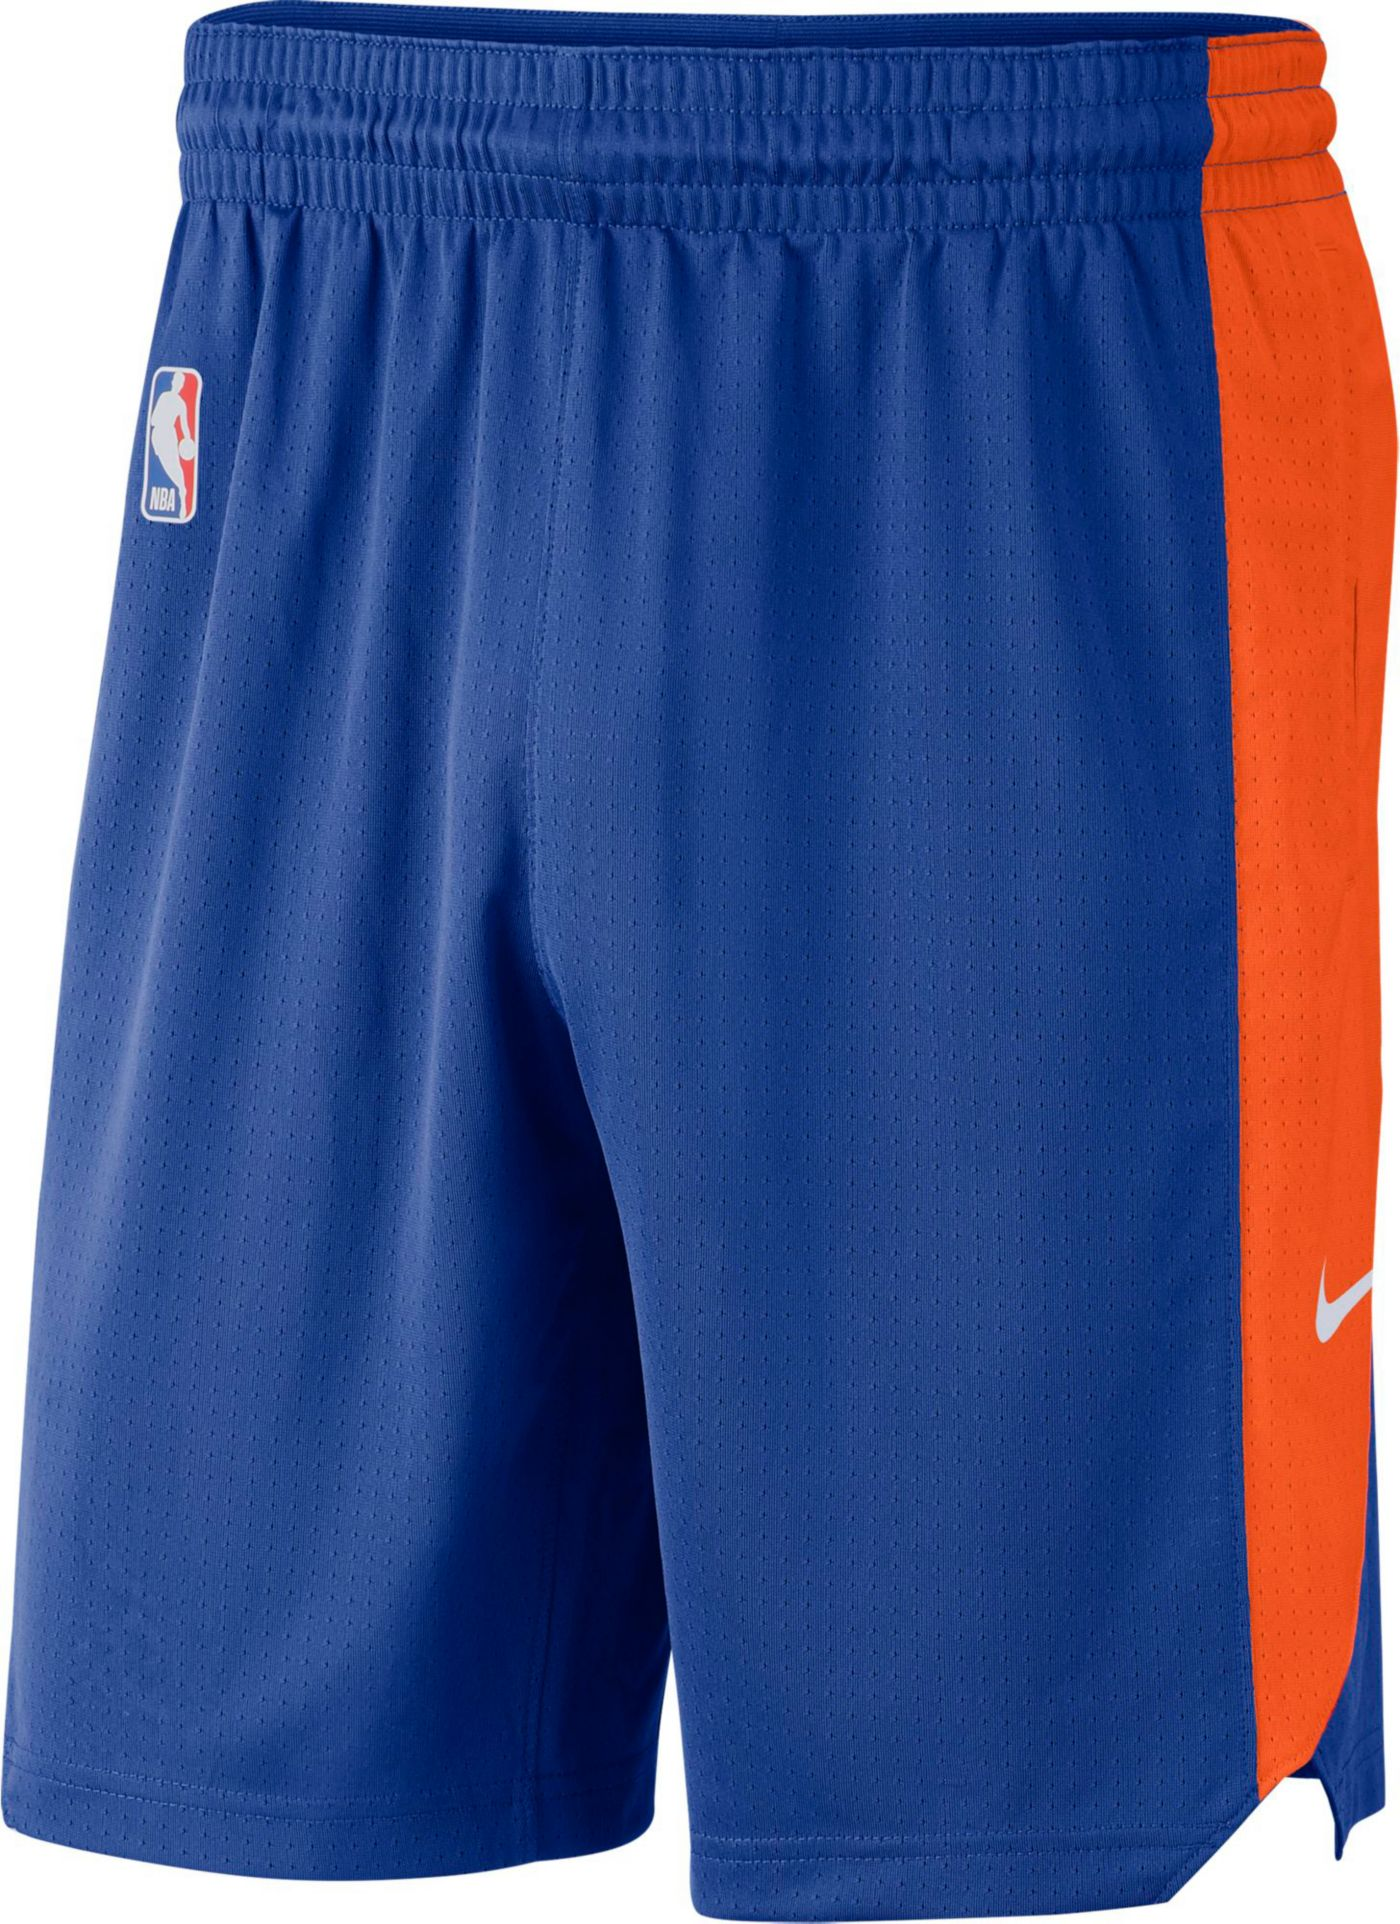 Nike Men's New York Knicks Dri-FIT Practice Shorts